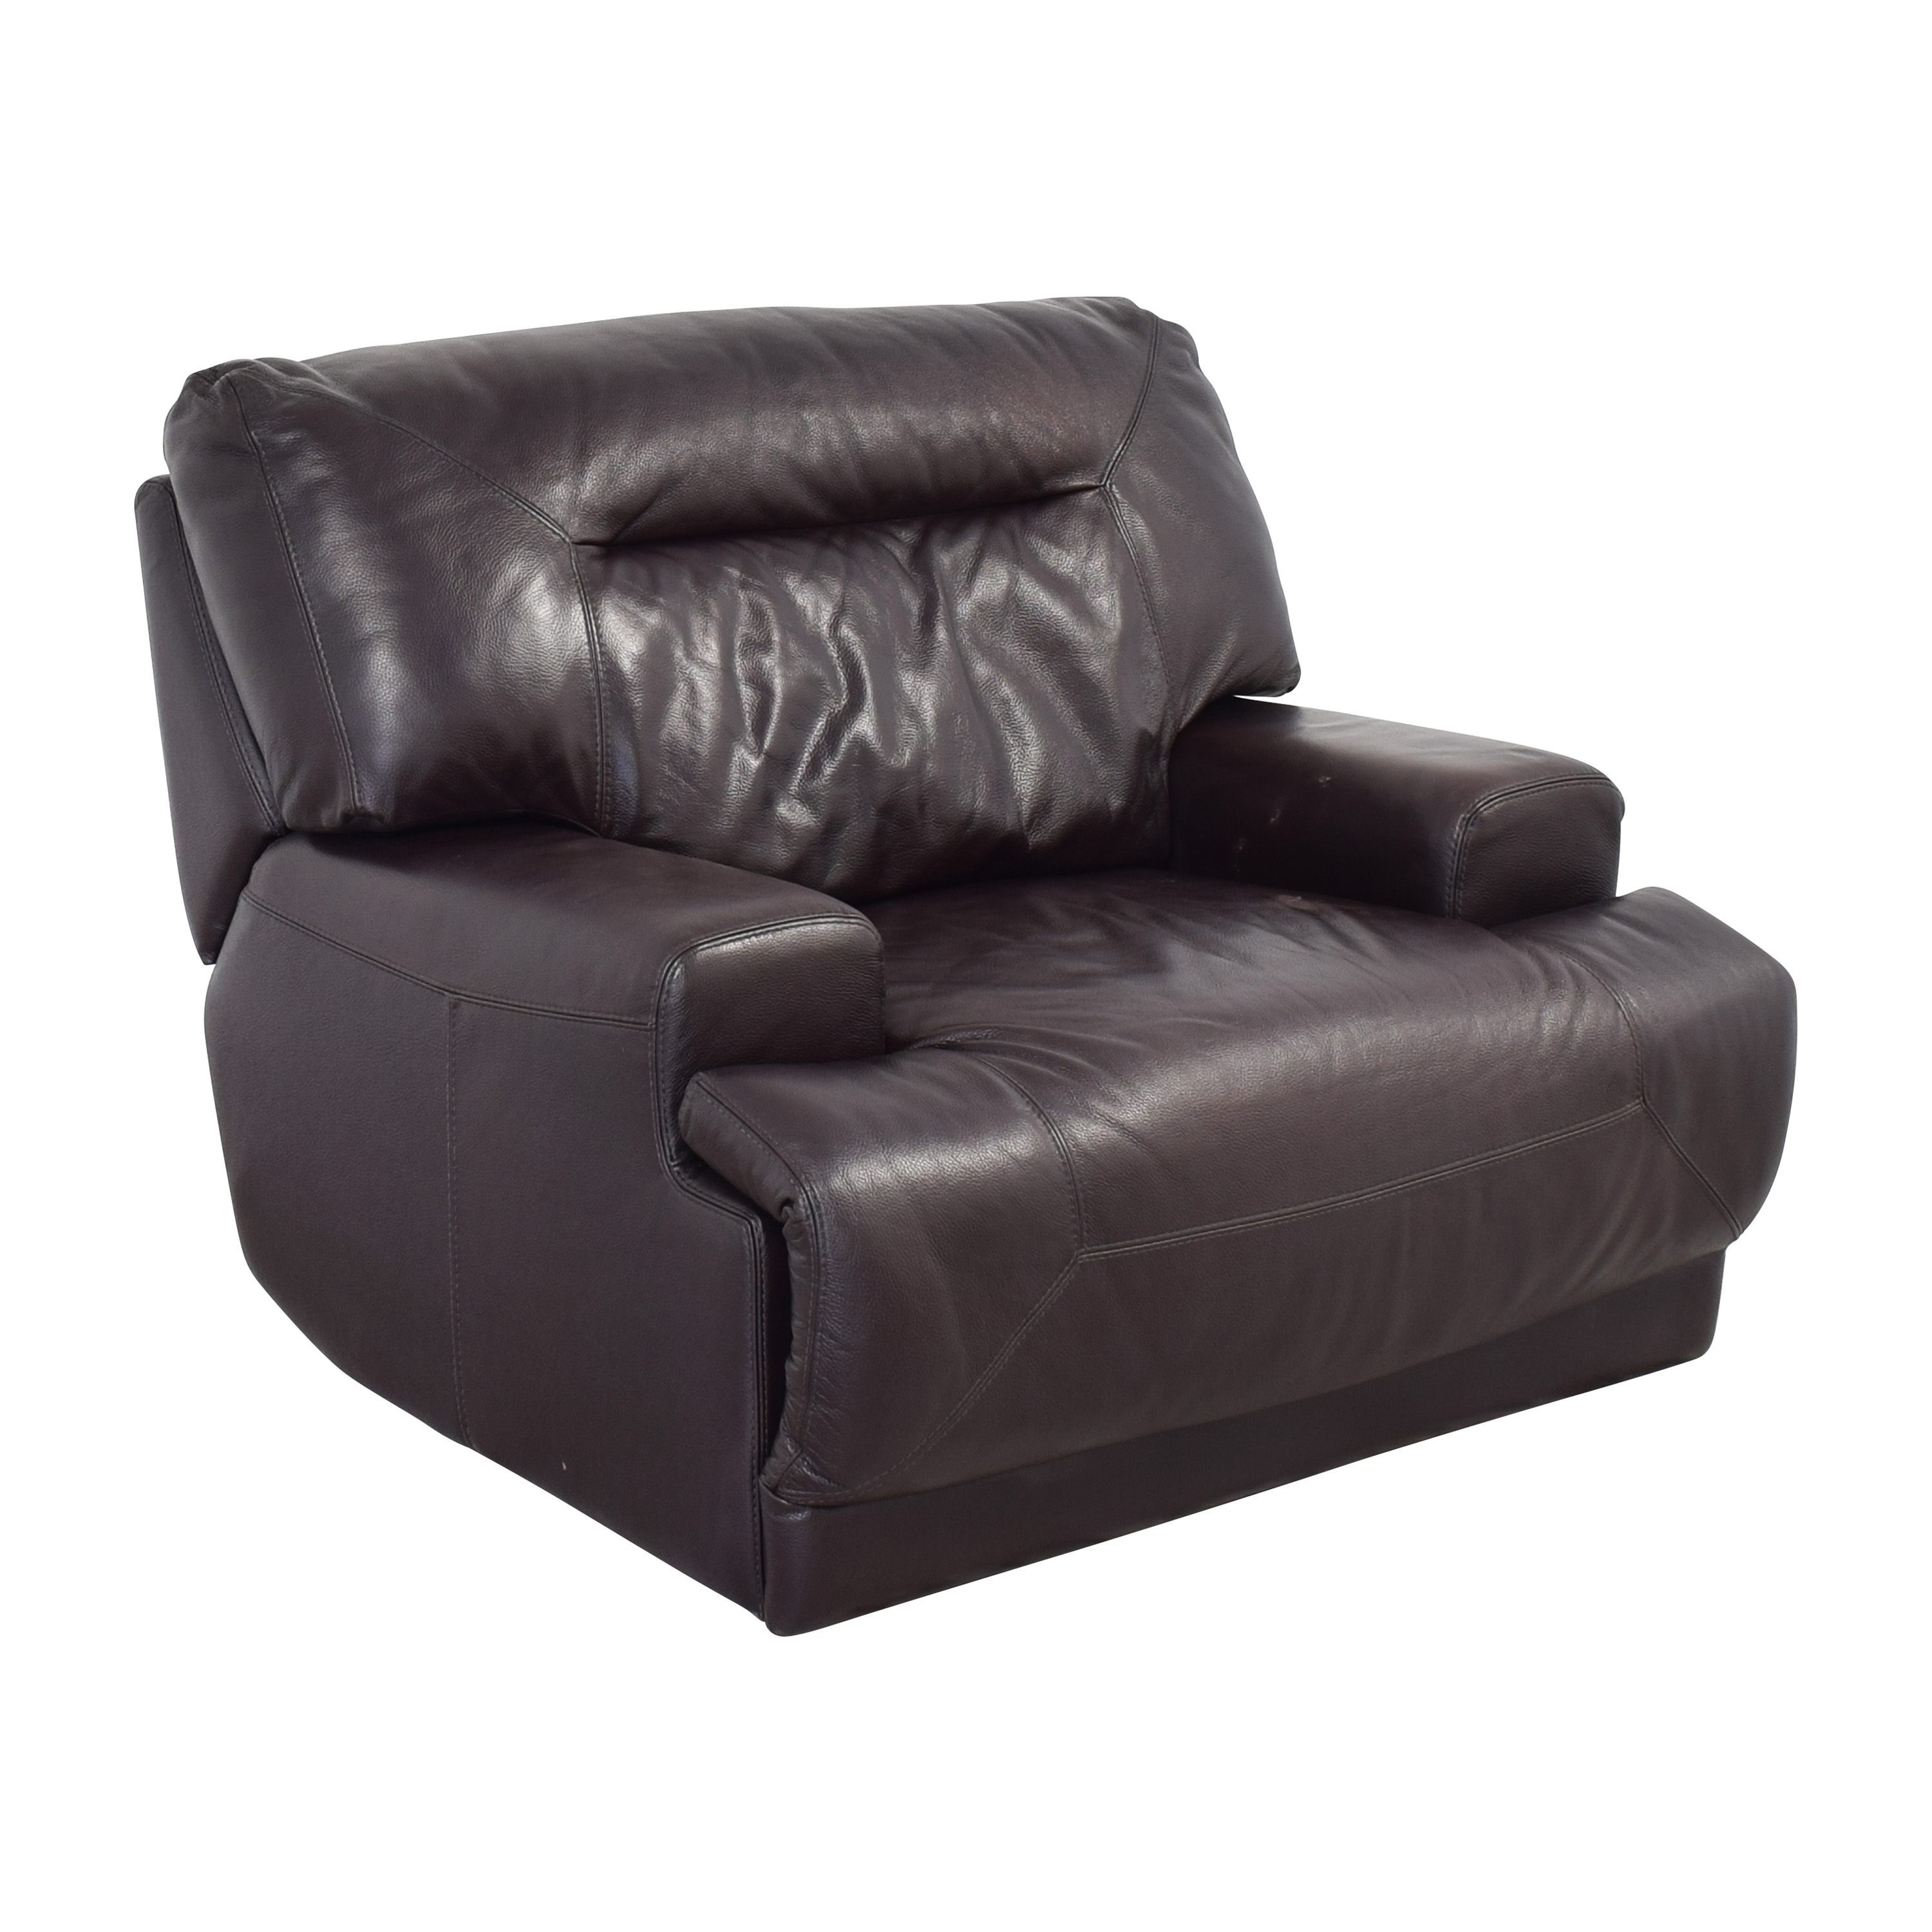 buy Macy's Recliner Accent Chair Macy's Chairs